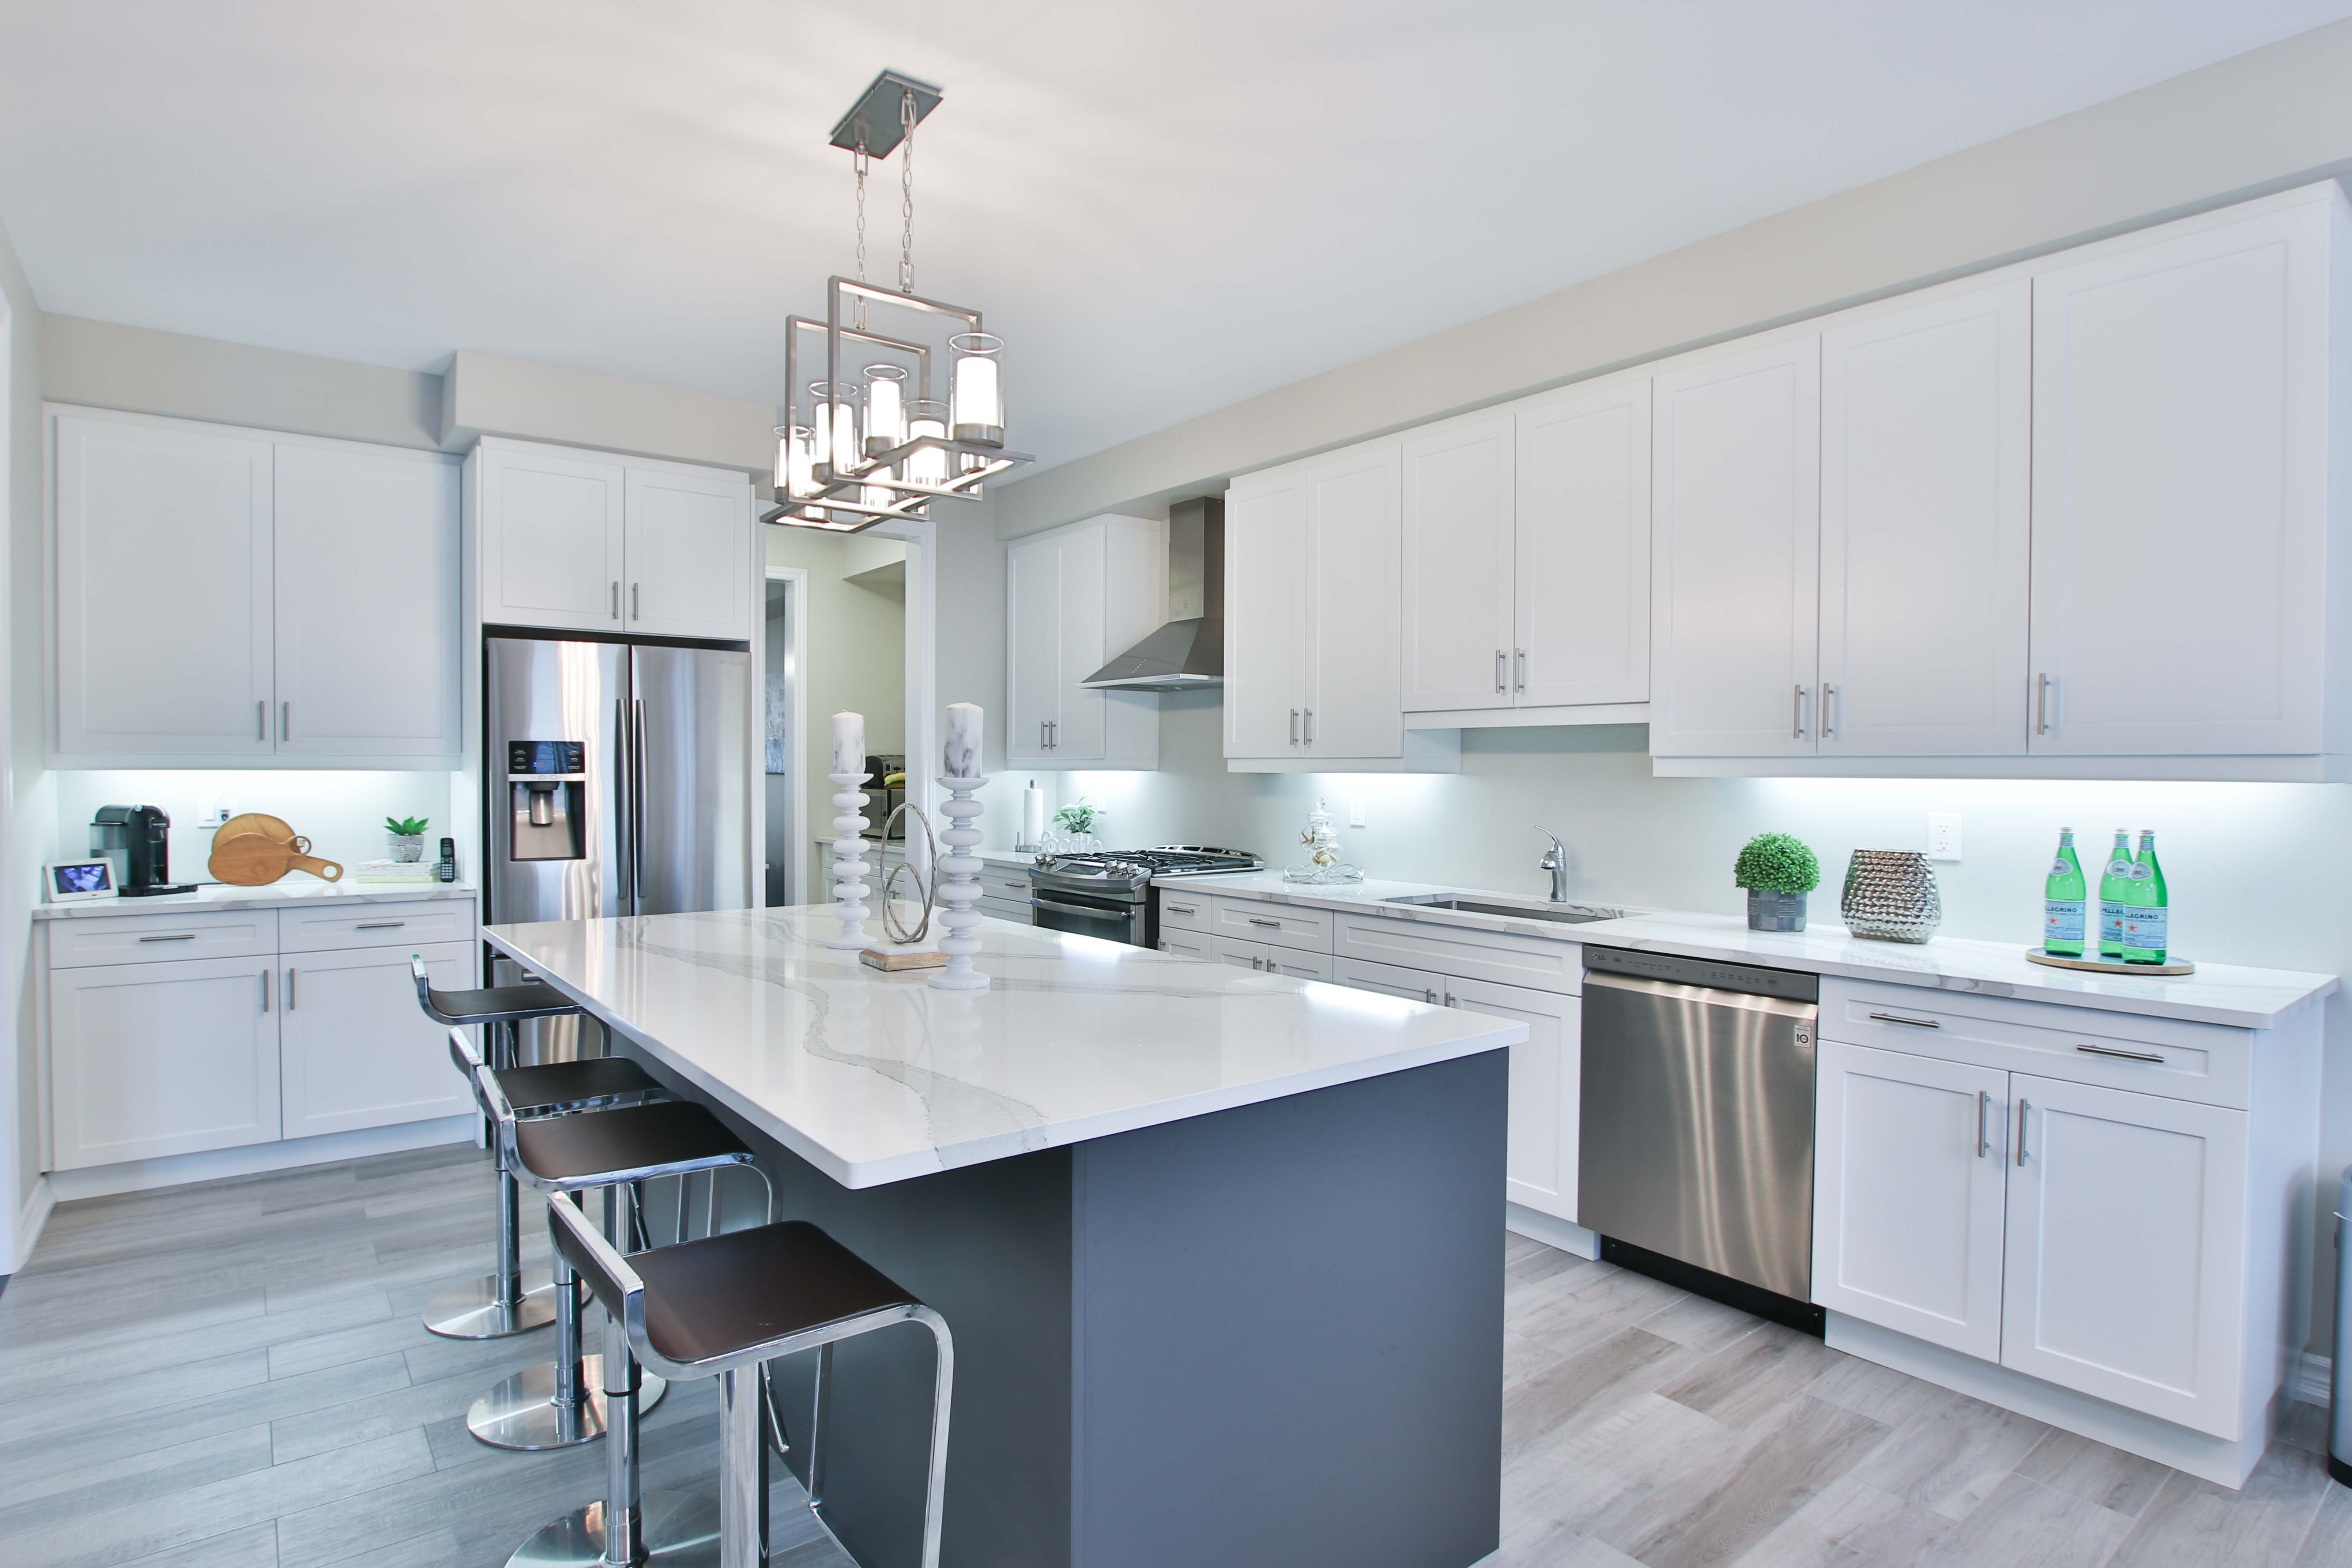 Top Rated House Cleaning Services in Montreal